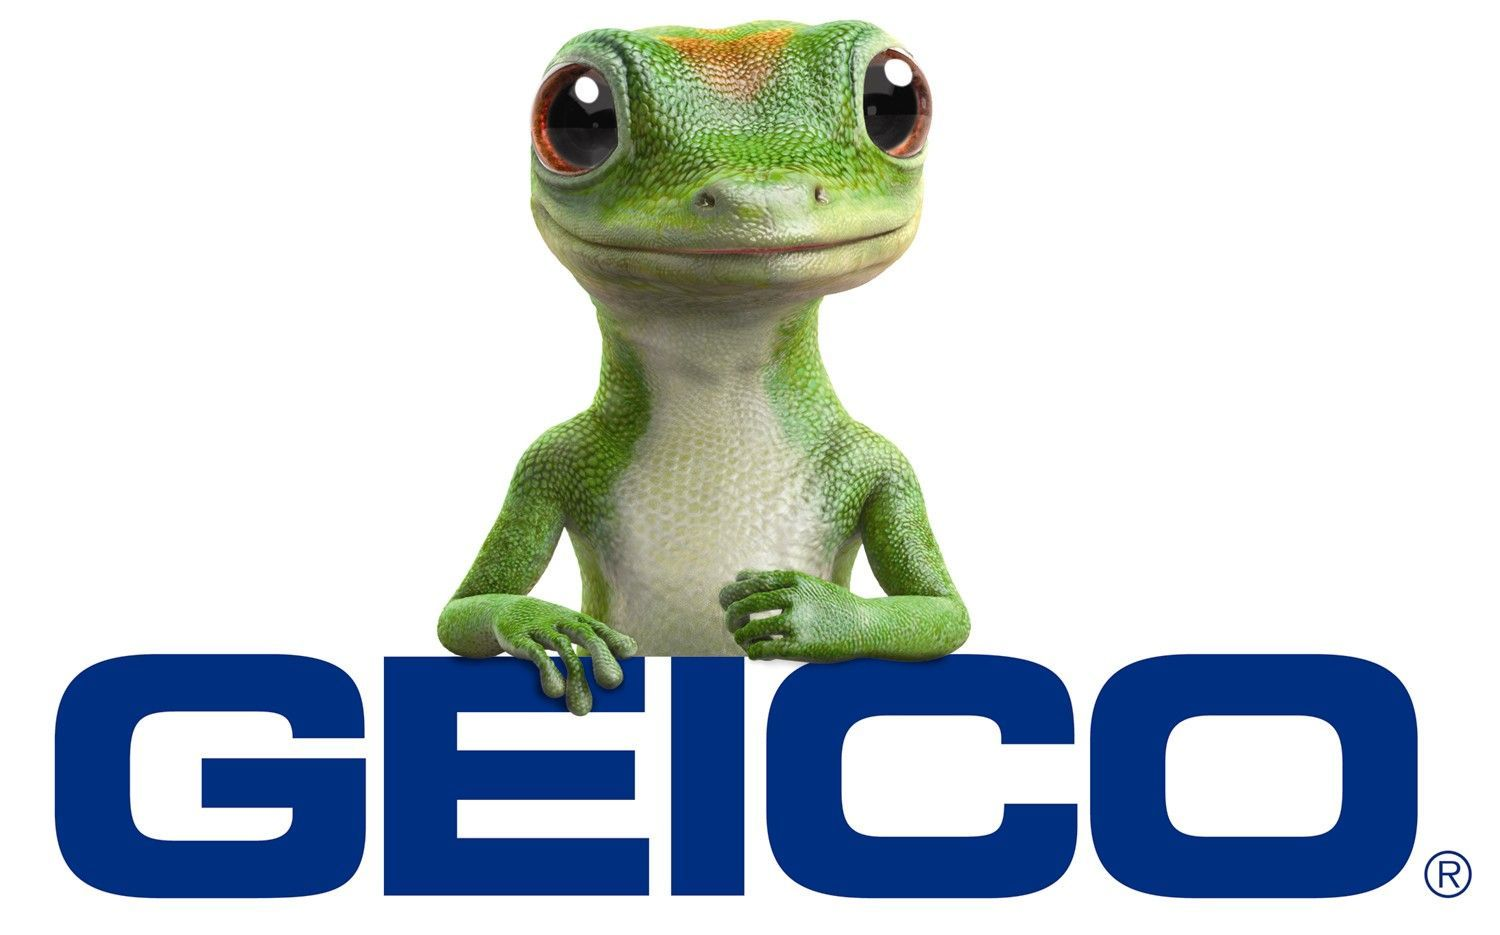 Geico Customer Service Numbers Geico Car Insurance Best Car Insurance Car Insurance